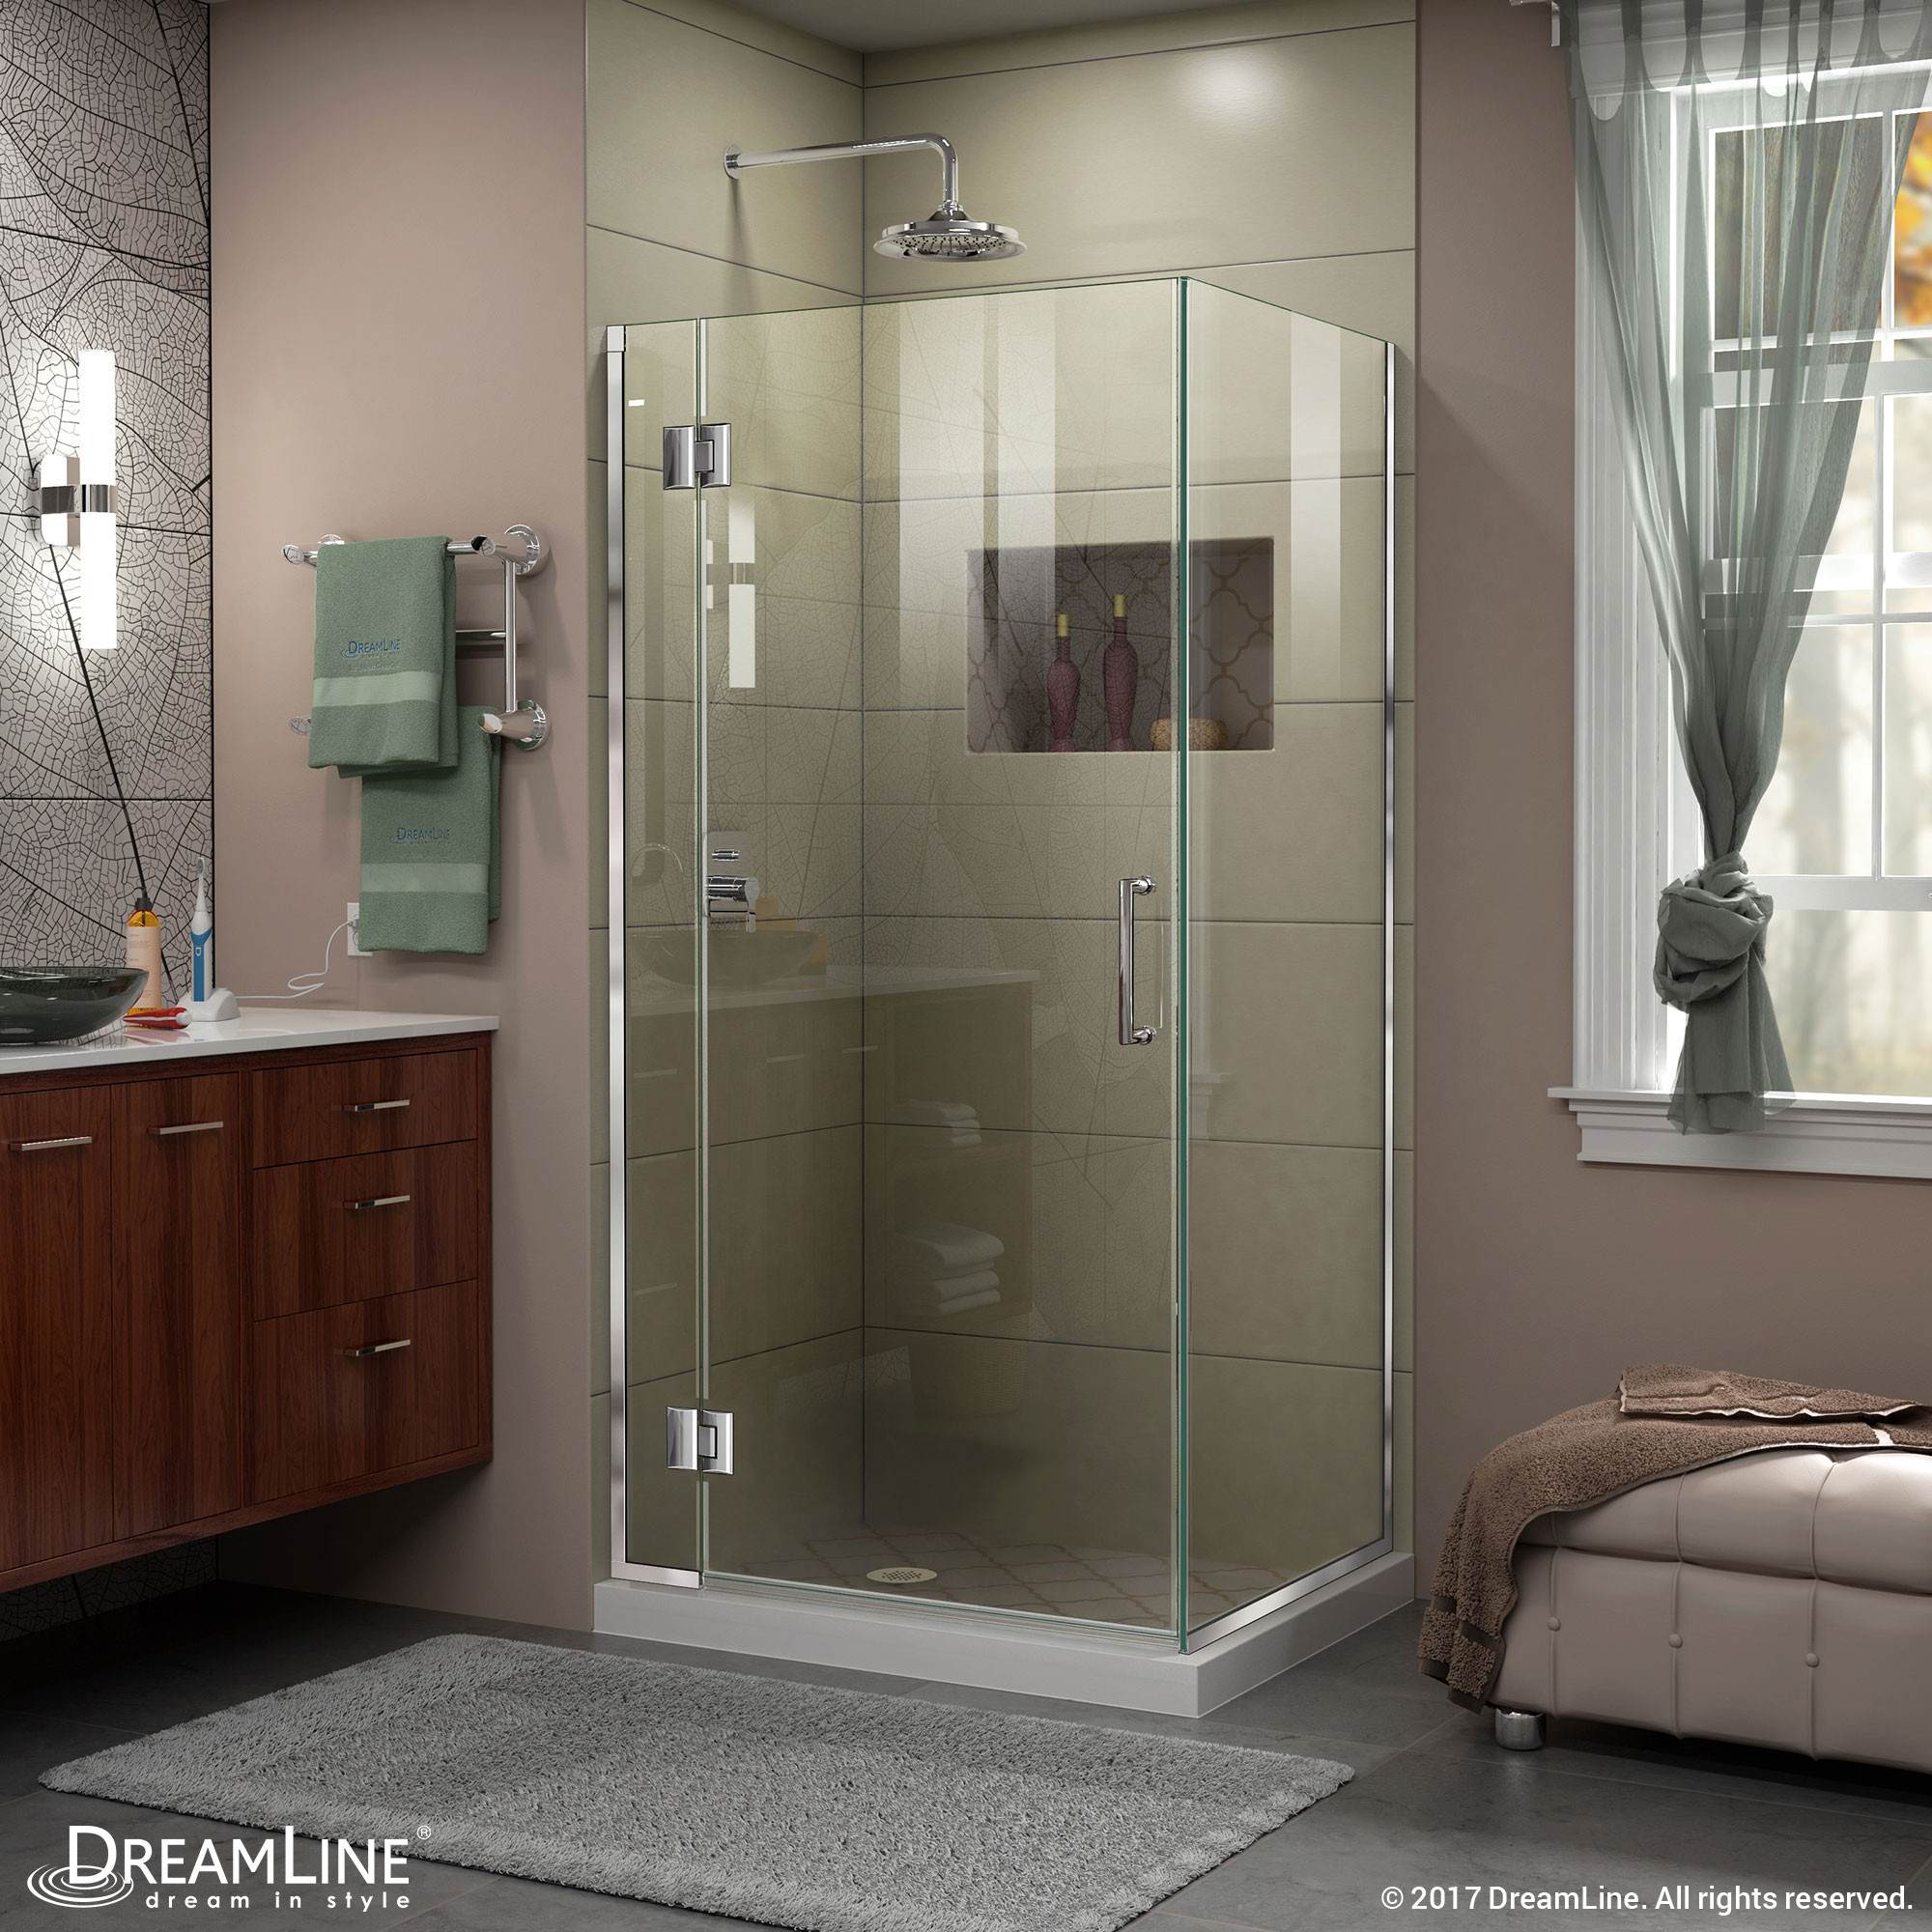 DreamLine E12830-01 Chrome 34-3/8 W x 30 in. D x 72 in. H Hinged Shower Enclosure